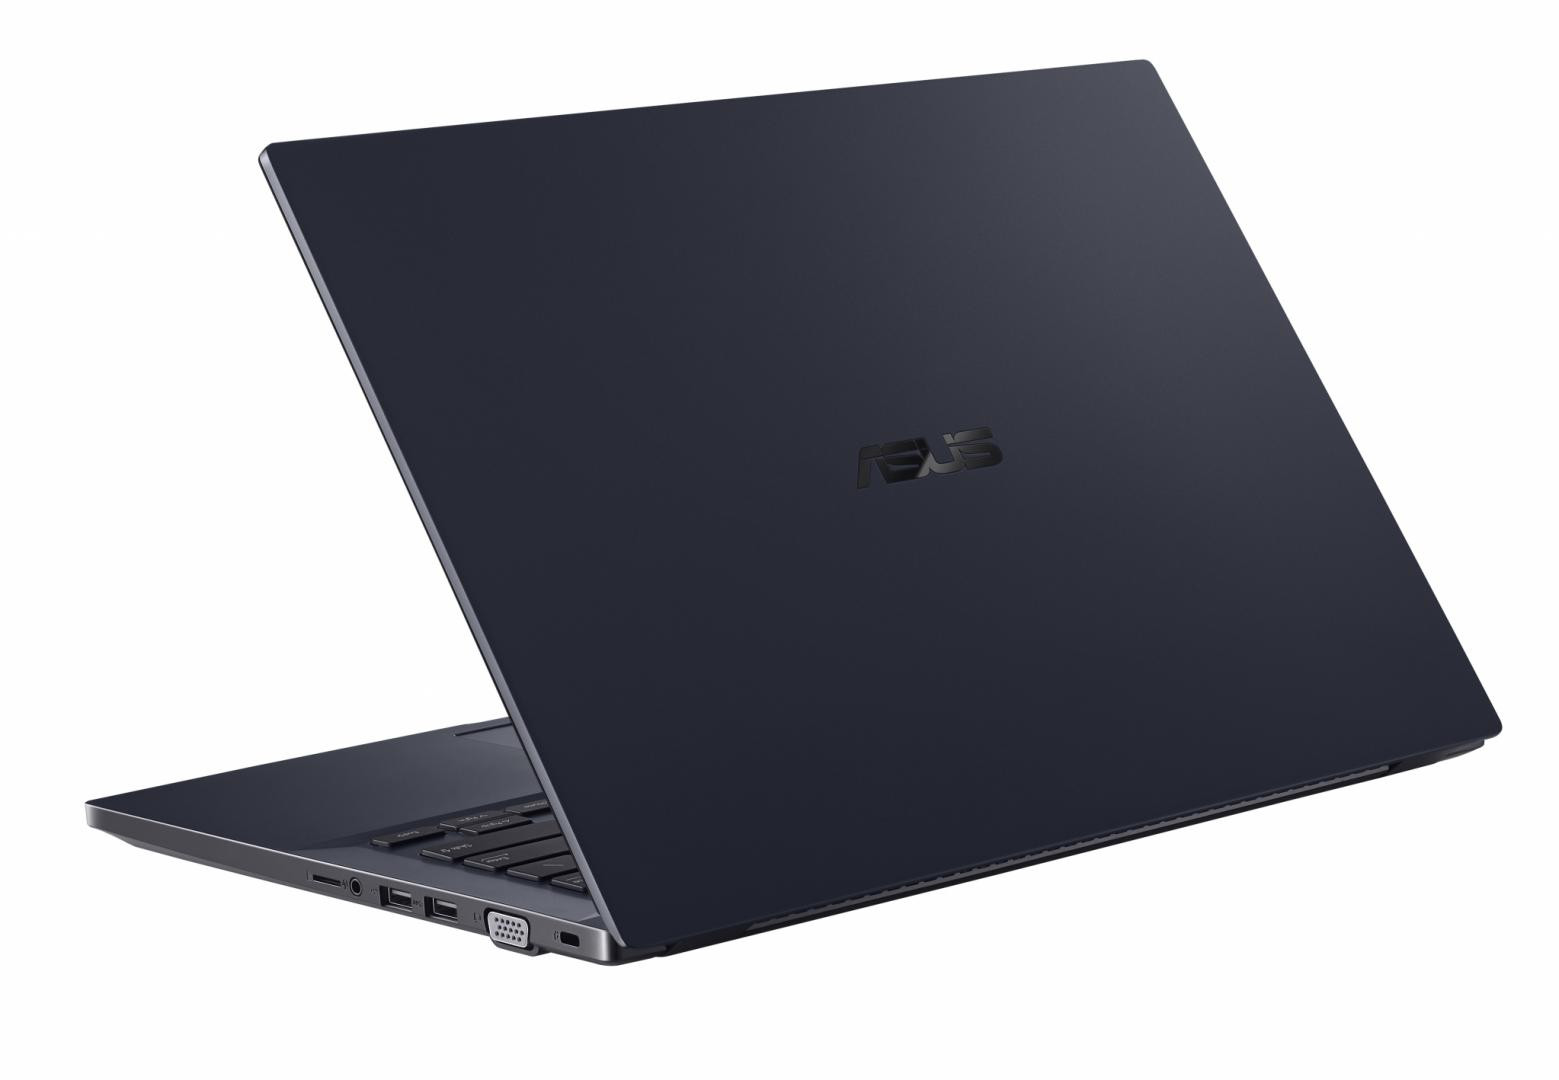 Laptop Business ASUS ExpertBook P2451FA-EB1385R, 14.0-inch, FHD (1920 x 1080) 16:9, LCD, Anti-glare display, IPS-levelPanel, Intel® Core™ i5- 10210U Processor 1.6 GHz (6M Cache, up to 4.2 GHz, 4 cores), Intel® UHD Graphics, 8GB DDR4 SO-DIMM, 512GB M.2 NVMe™ PCIe® 3.0 SSD, Wi-Fi 5 - imaginea 2